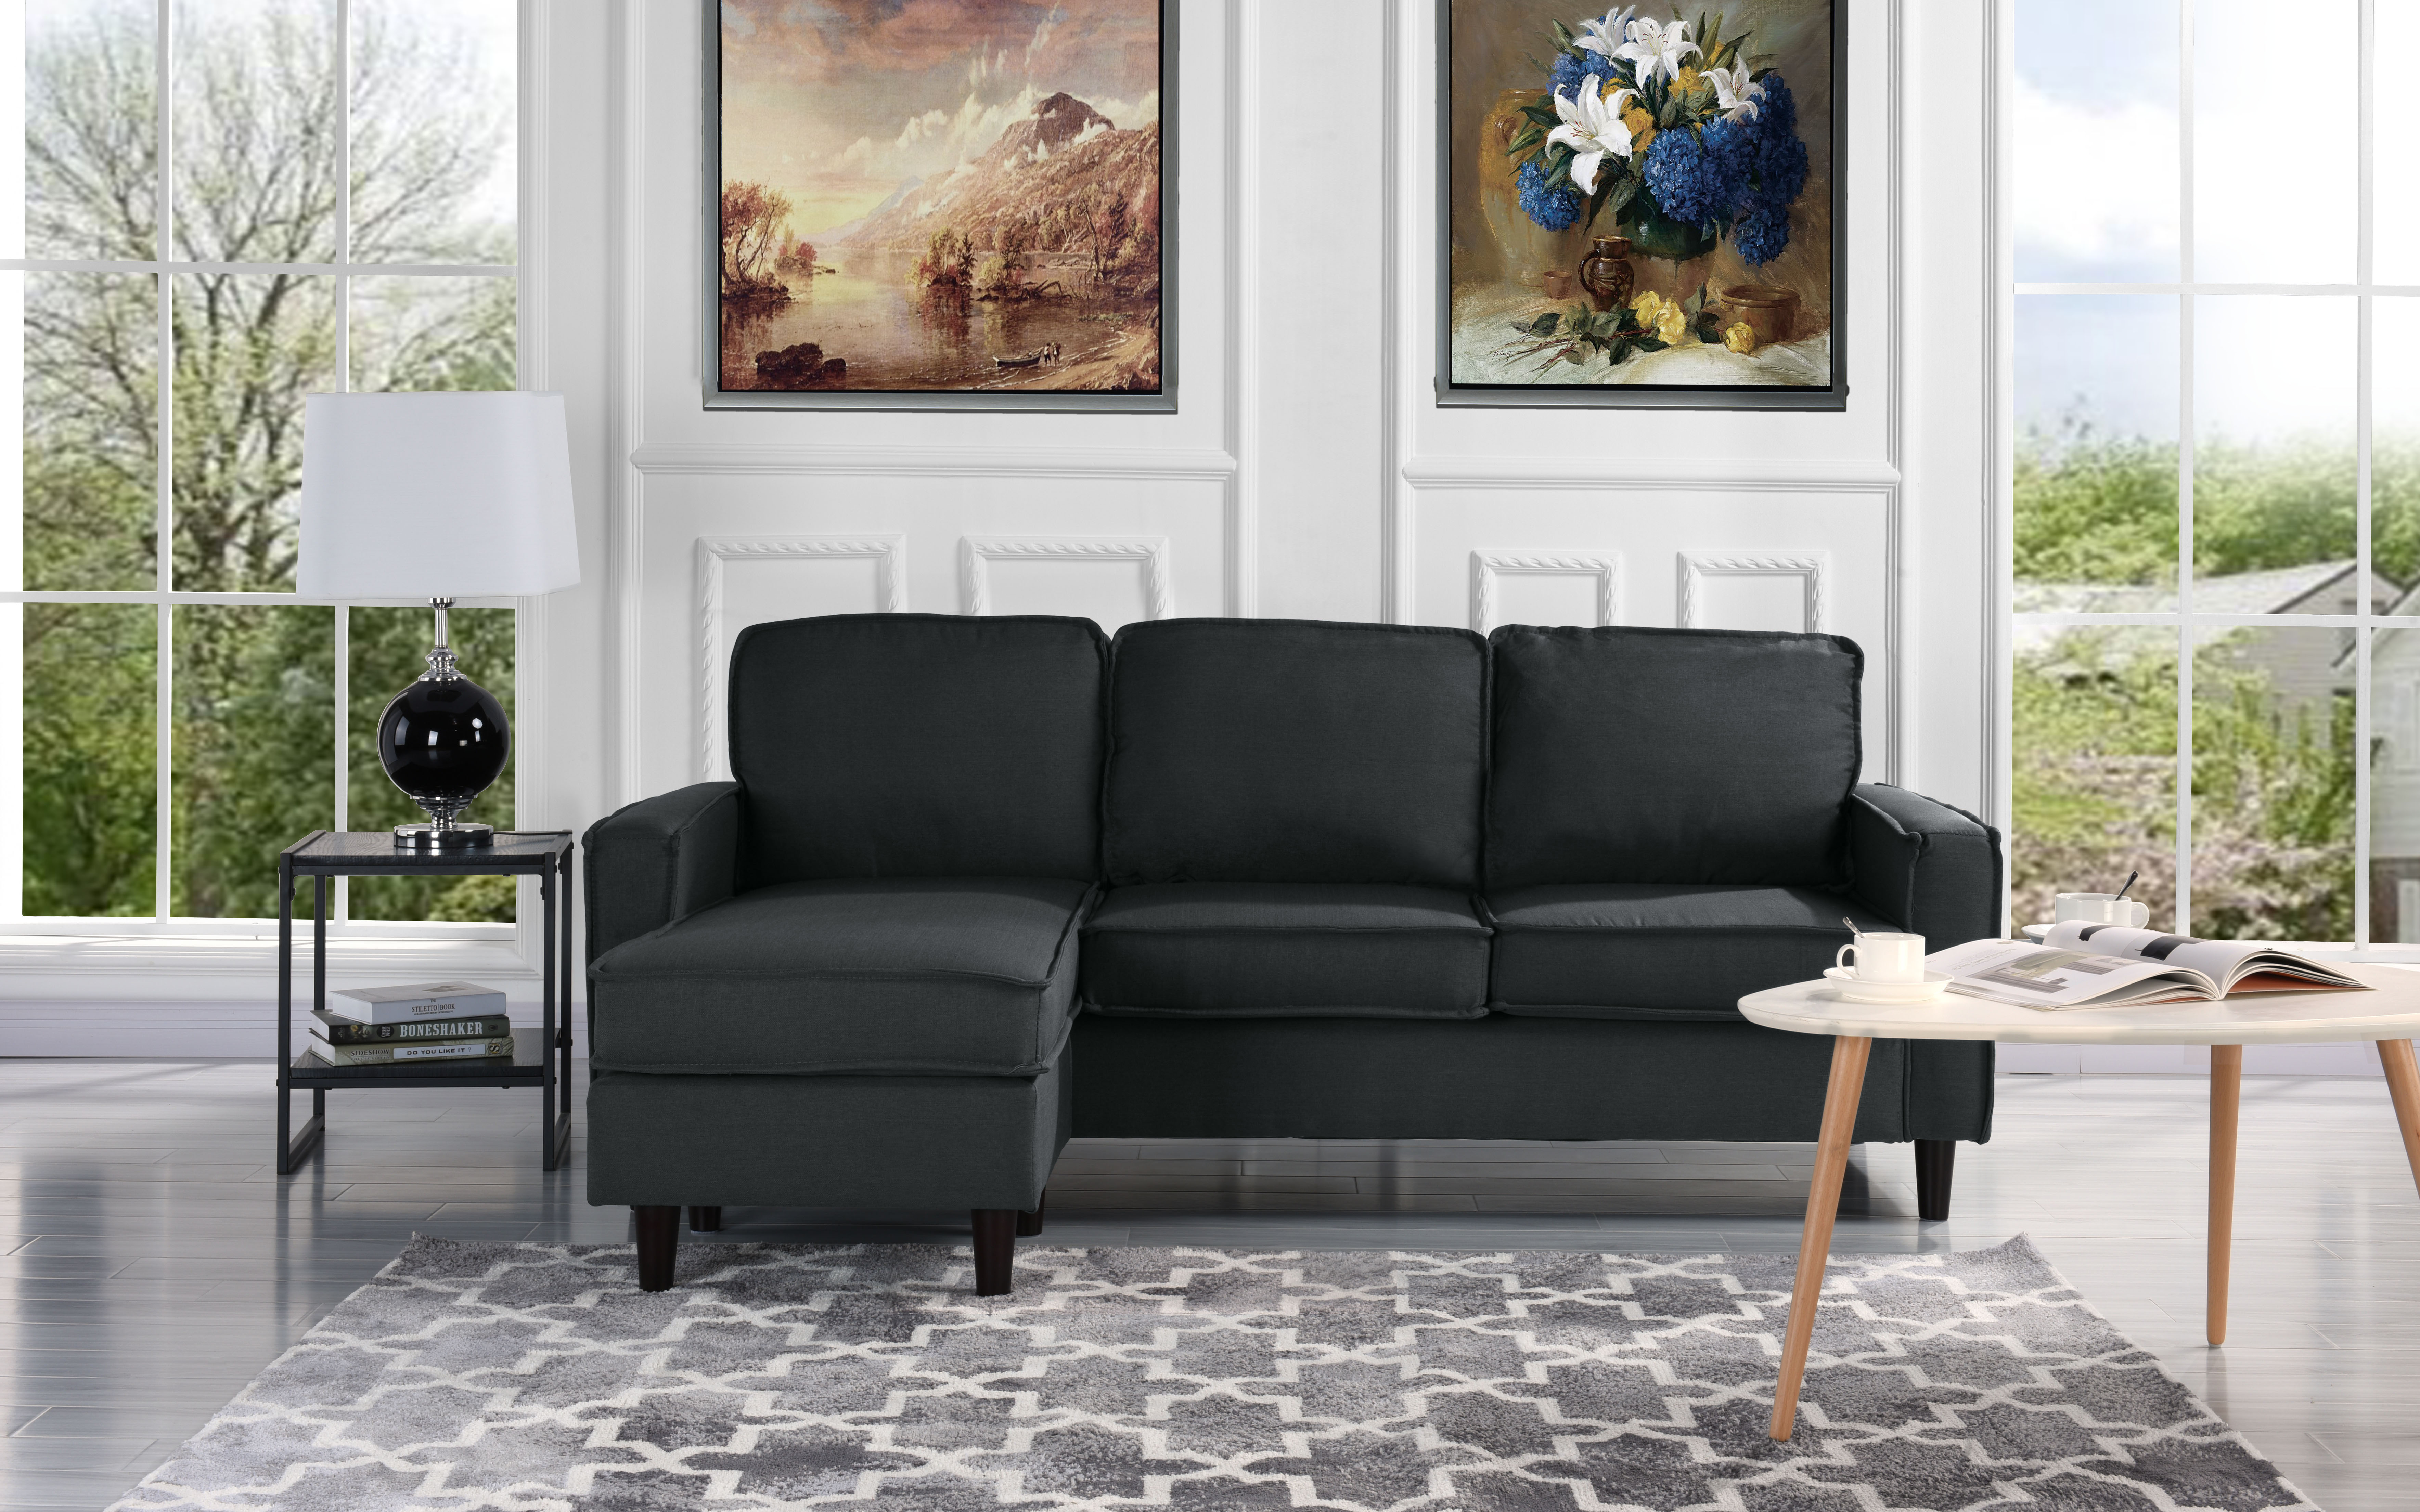 Miraculous Modern Linen Fabric Sectional Sofa Small Space Configurable Couch Dark Grey Machost Co Dining Chair Design Ideas Machostcouk